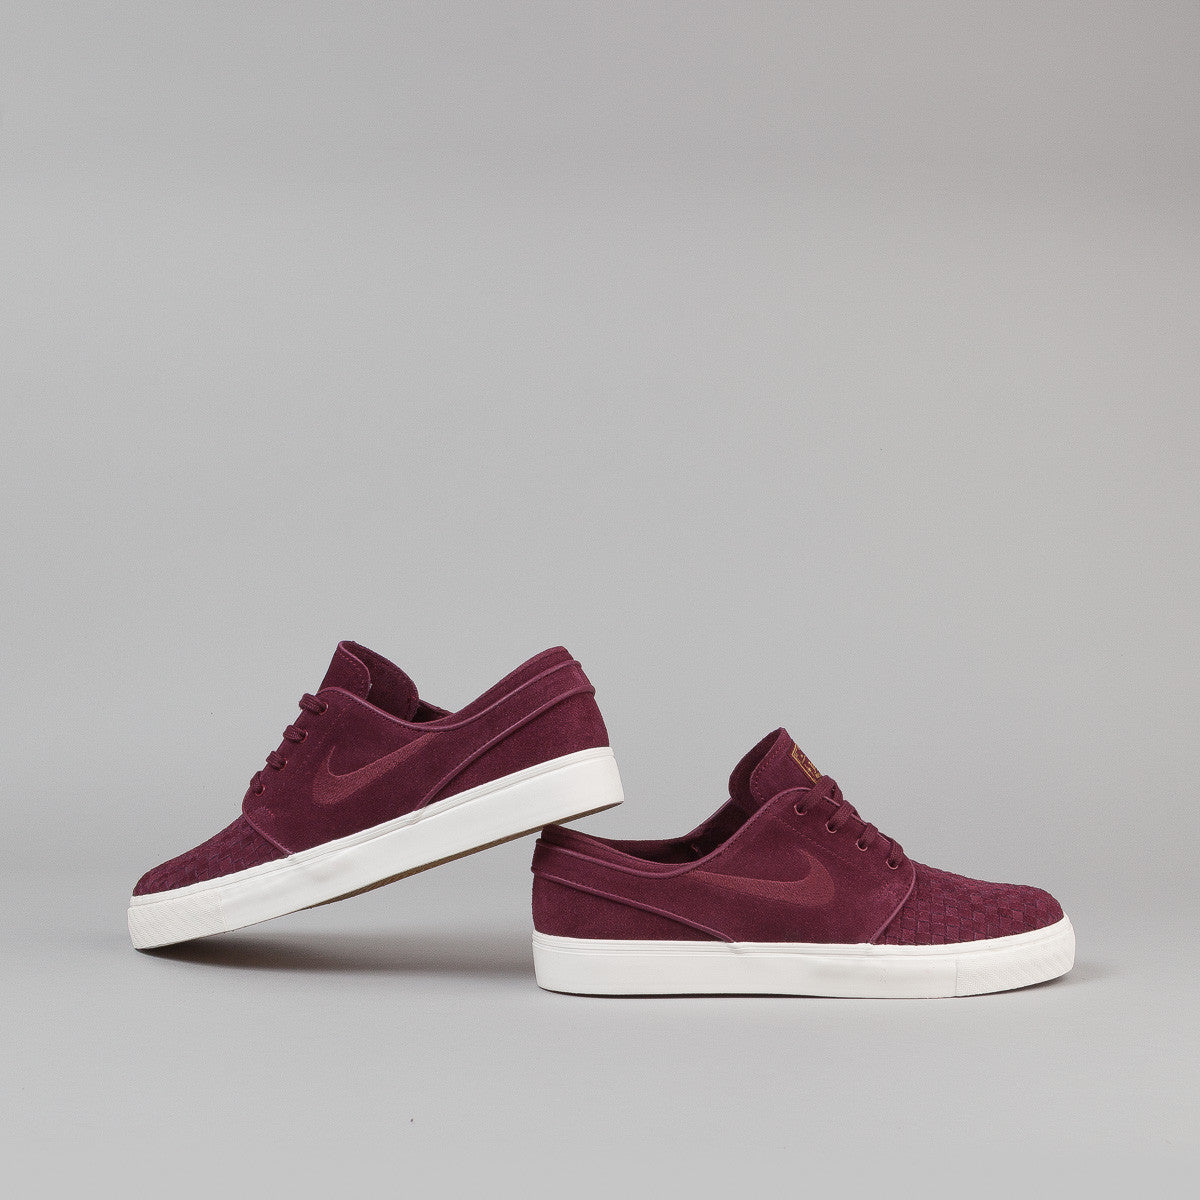 Nike SB Stefan Janoski Elite Shoes - Night Maroon / Night Maroon - Ivory - Metallic Gold